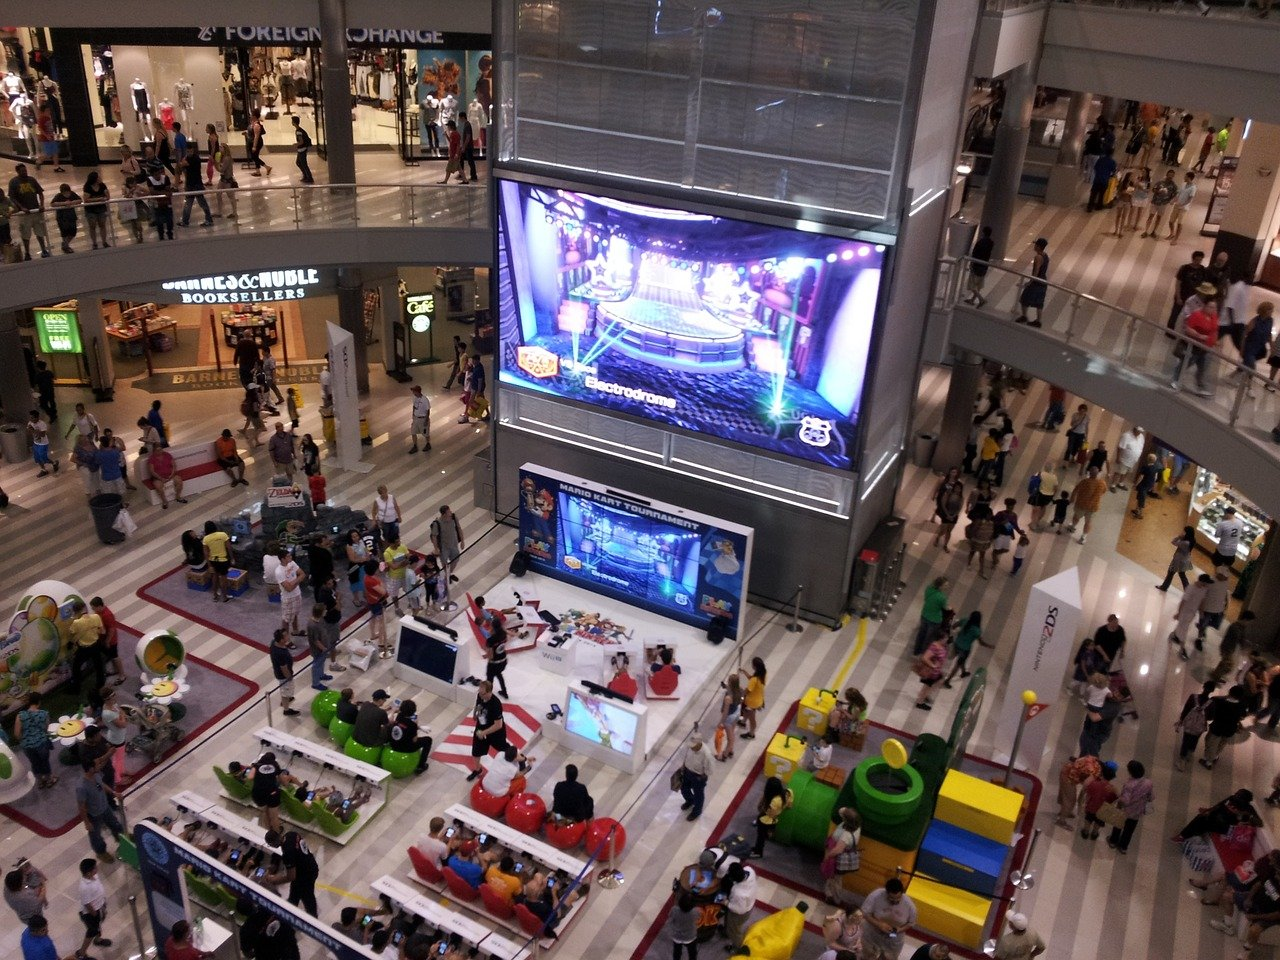 shopping-mall-1431746_1280